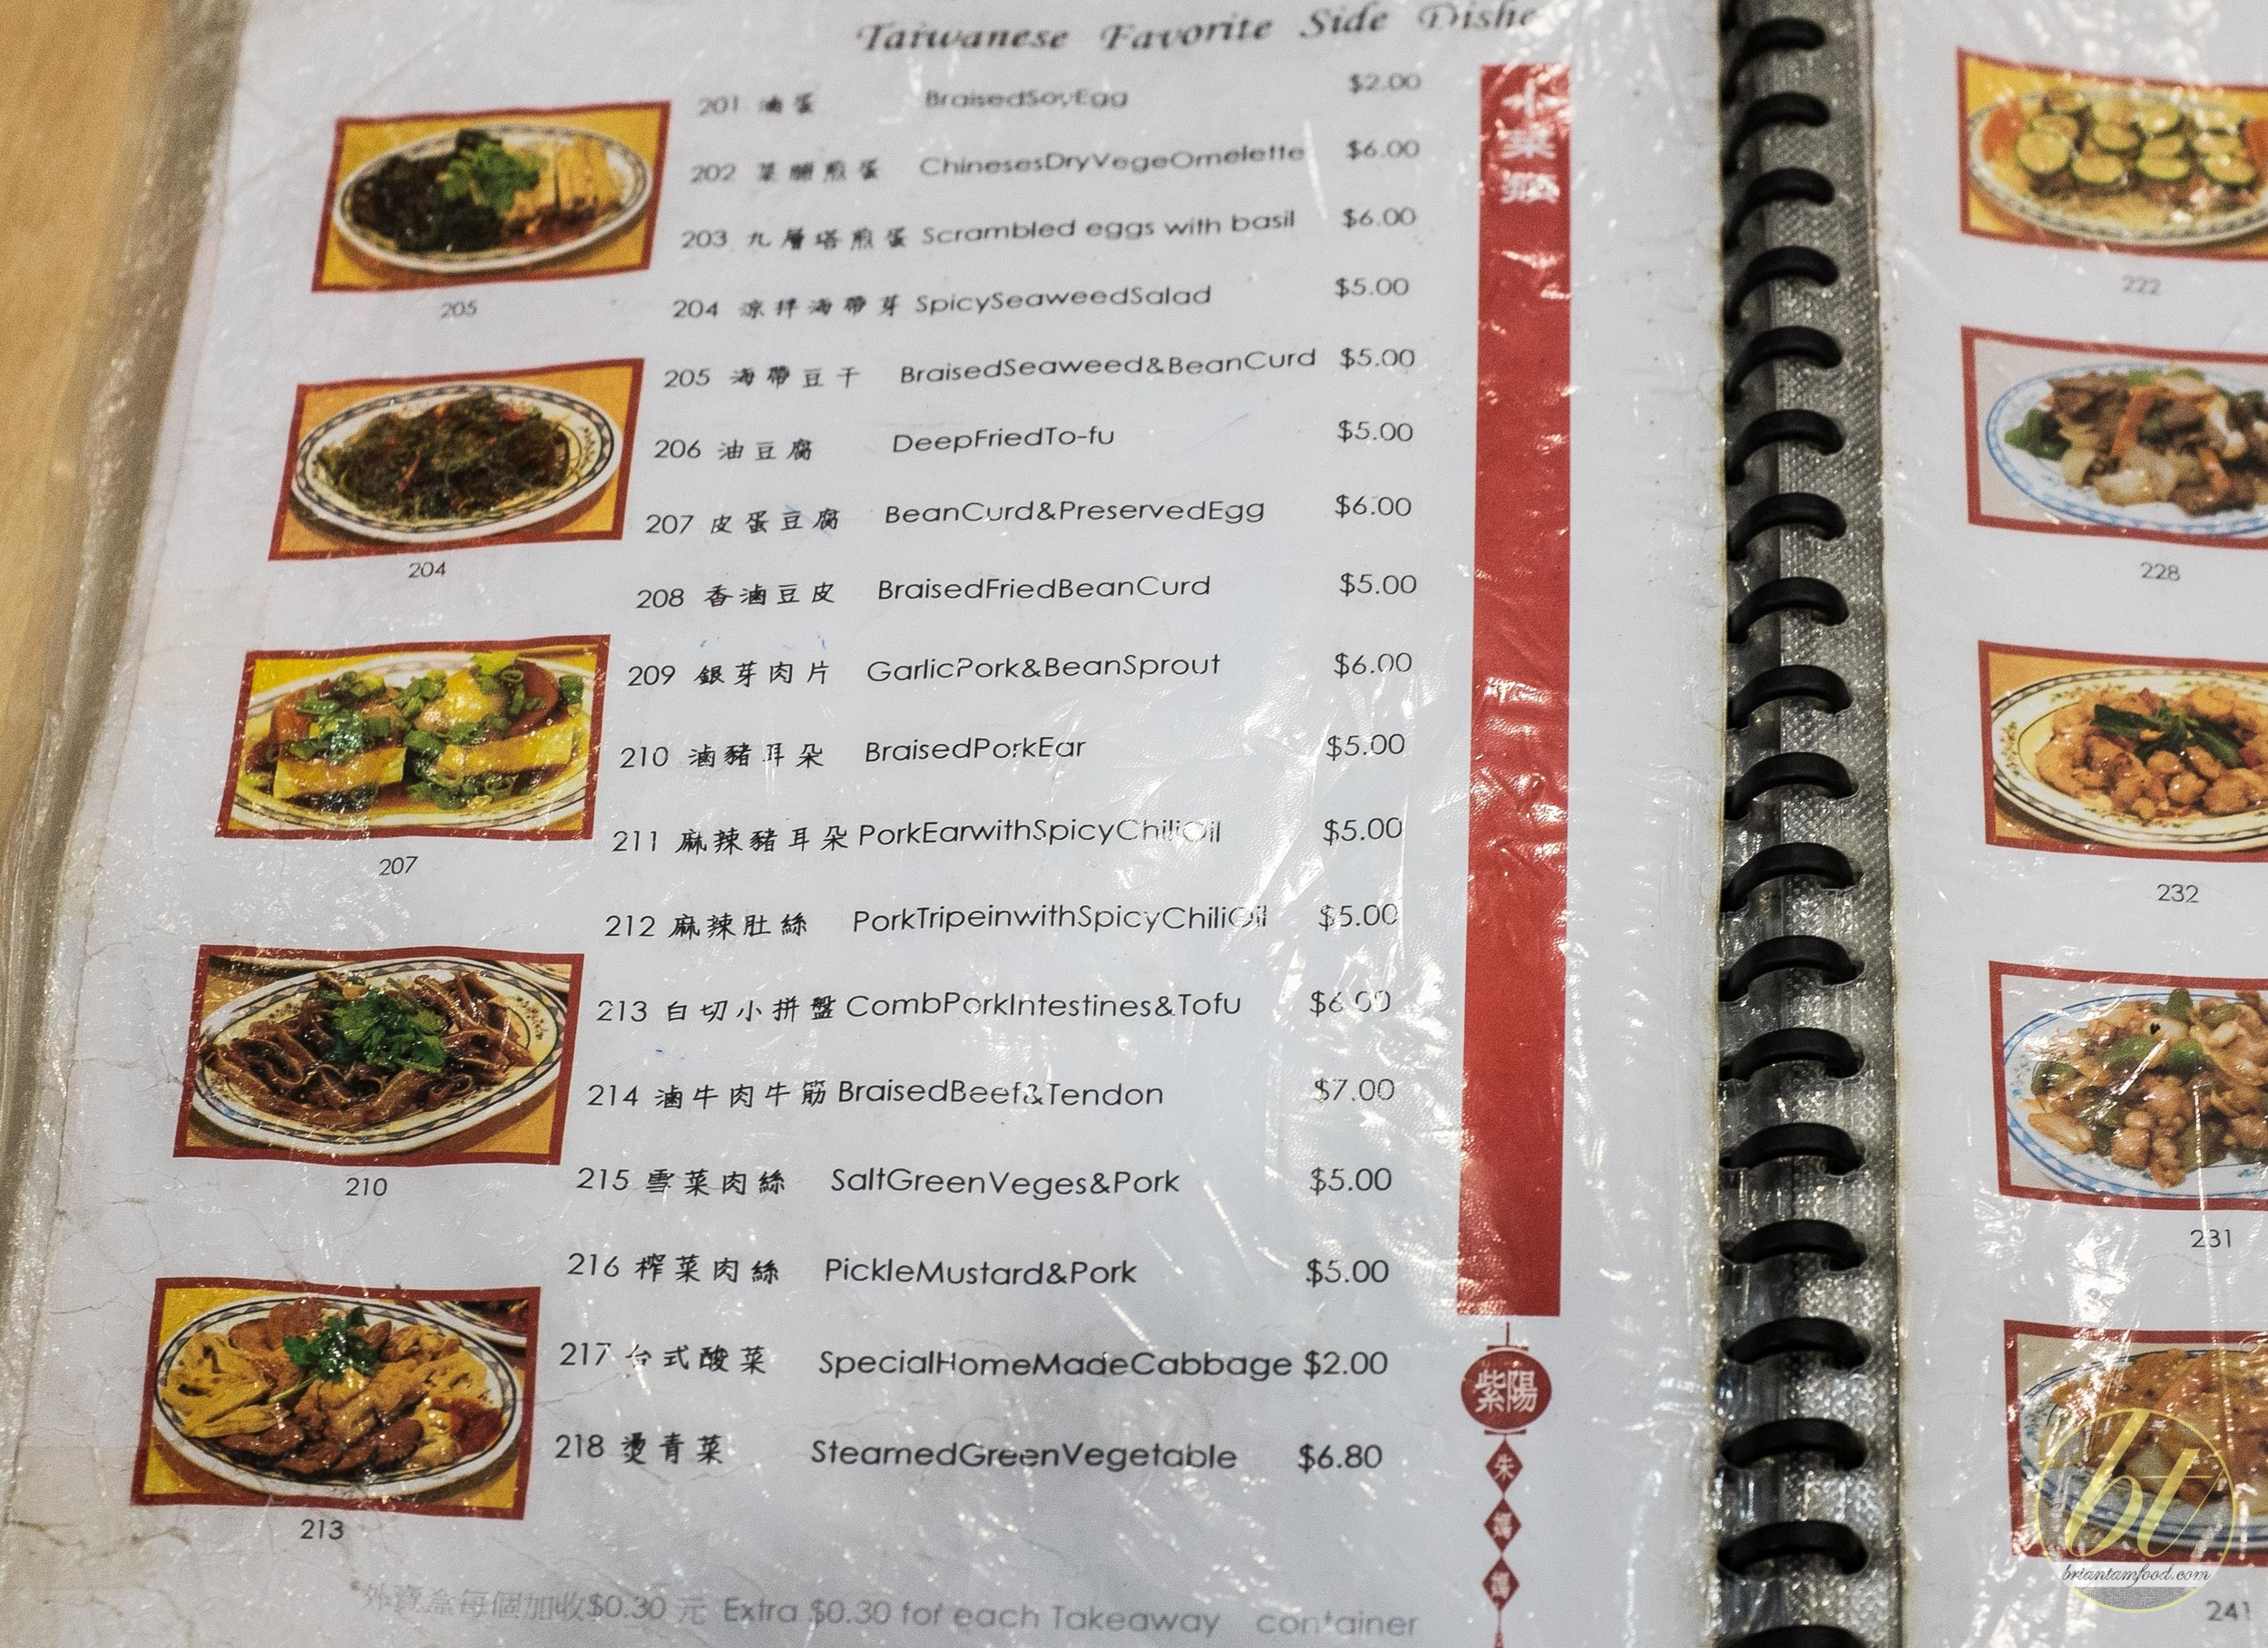 Mother Chu's Taiwanese Haymarket menu